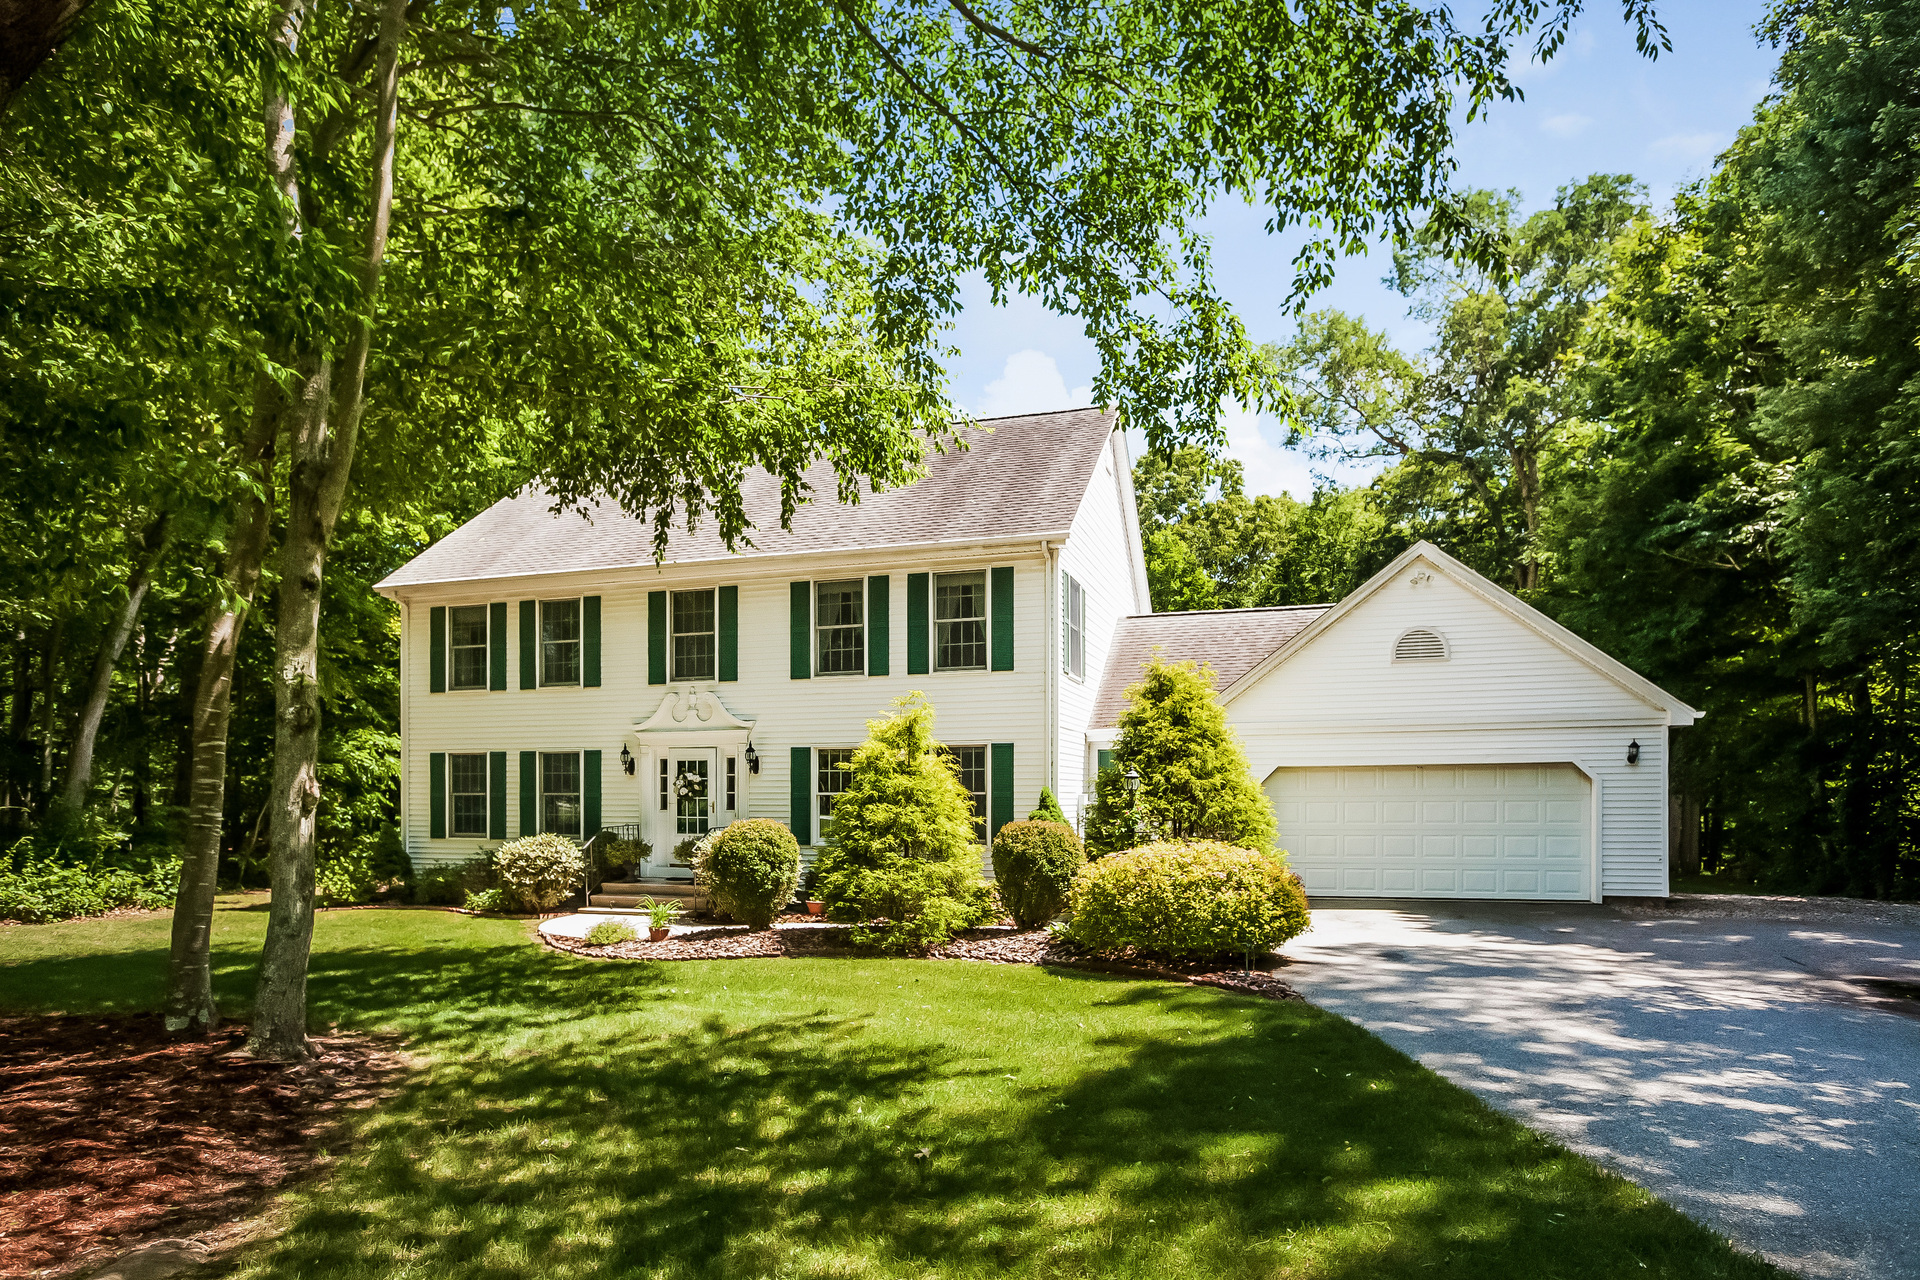 Single Family Home for Sale at Lovely Colonial 11 Eska Drive Ledyard, Connecticut 06339 United States